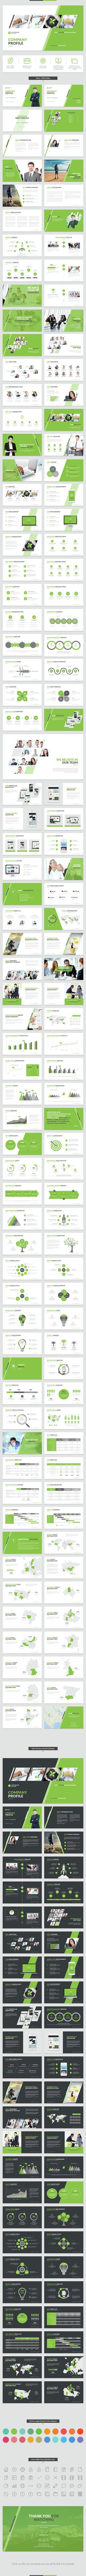 Company Profile PowerPoint Template  #marketing plan #business plan • Download ➝ https://graphicriver.net/item/company-profile-powerpoint-template/15182669?ref=pxcr